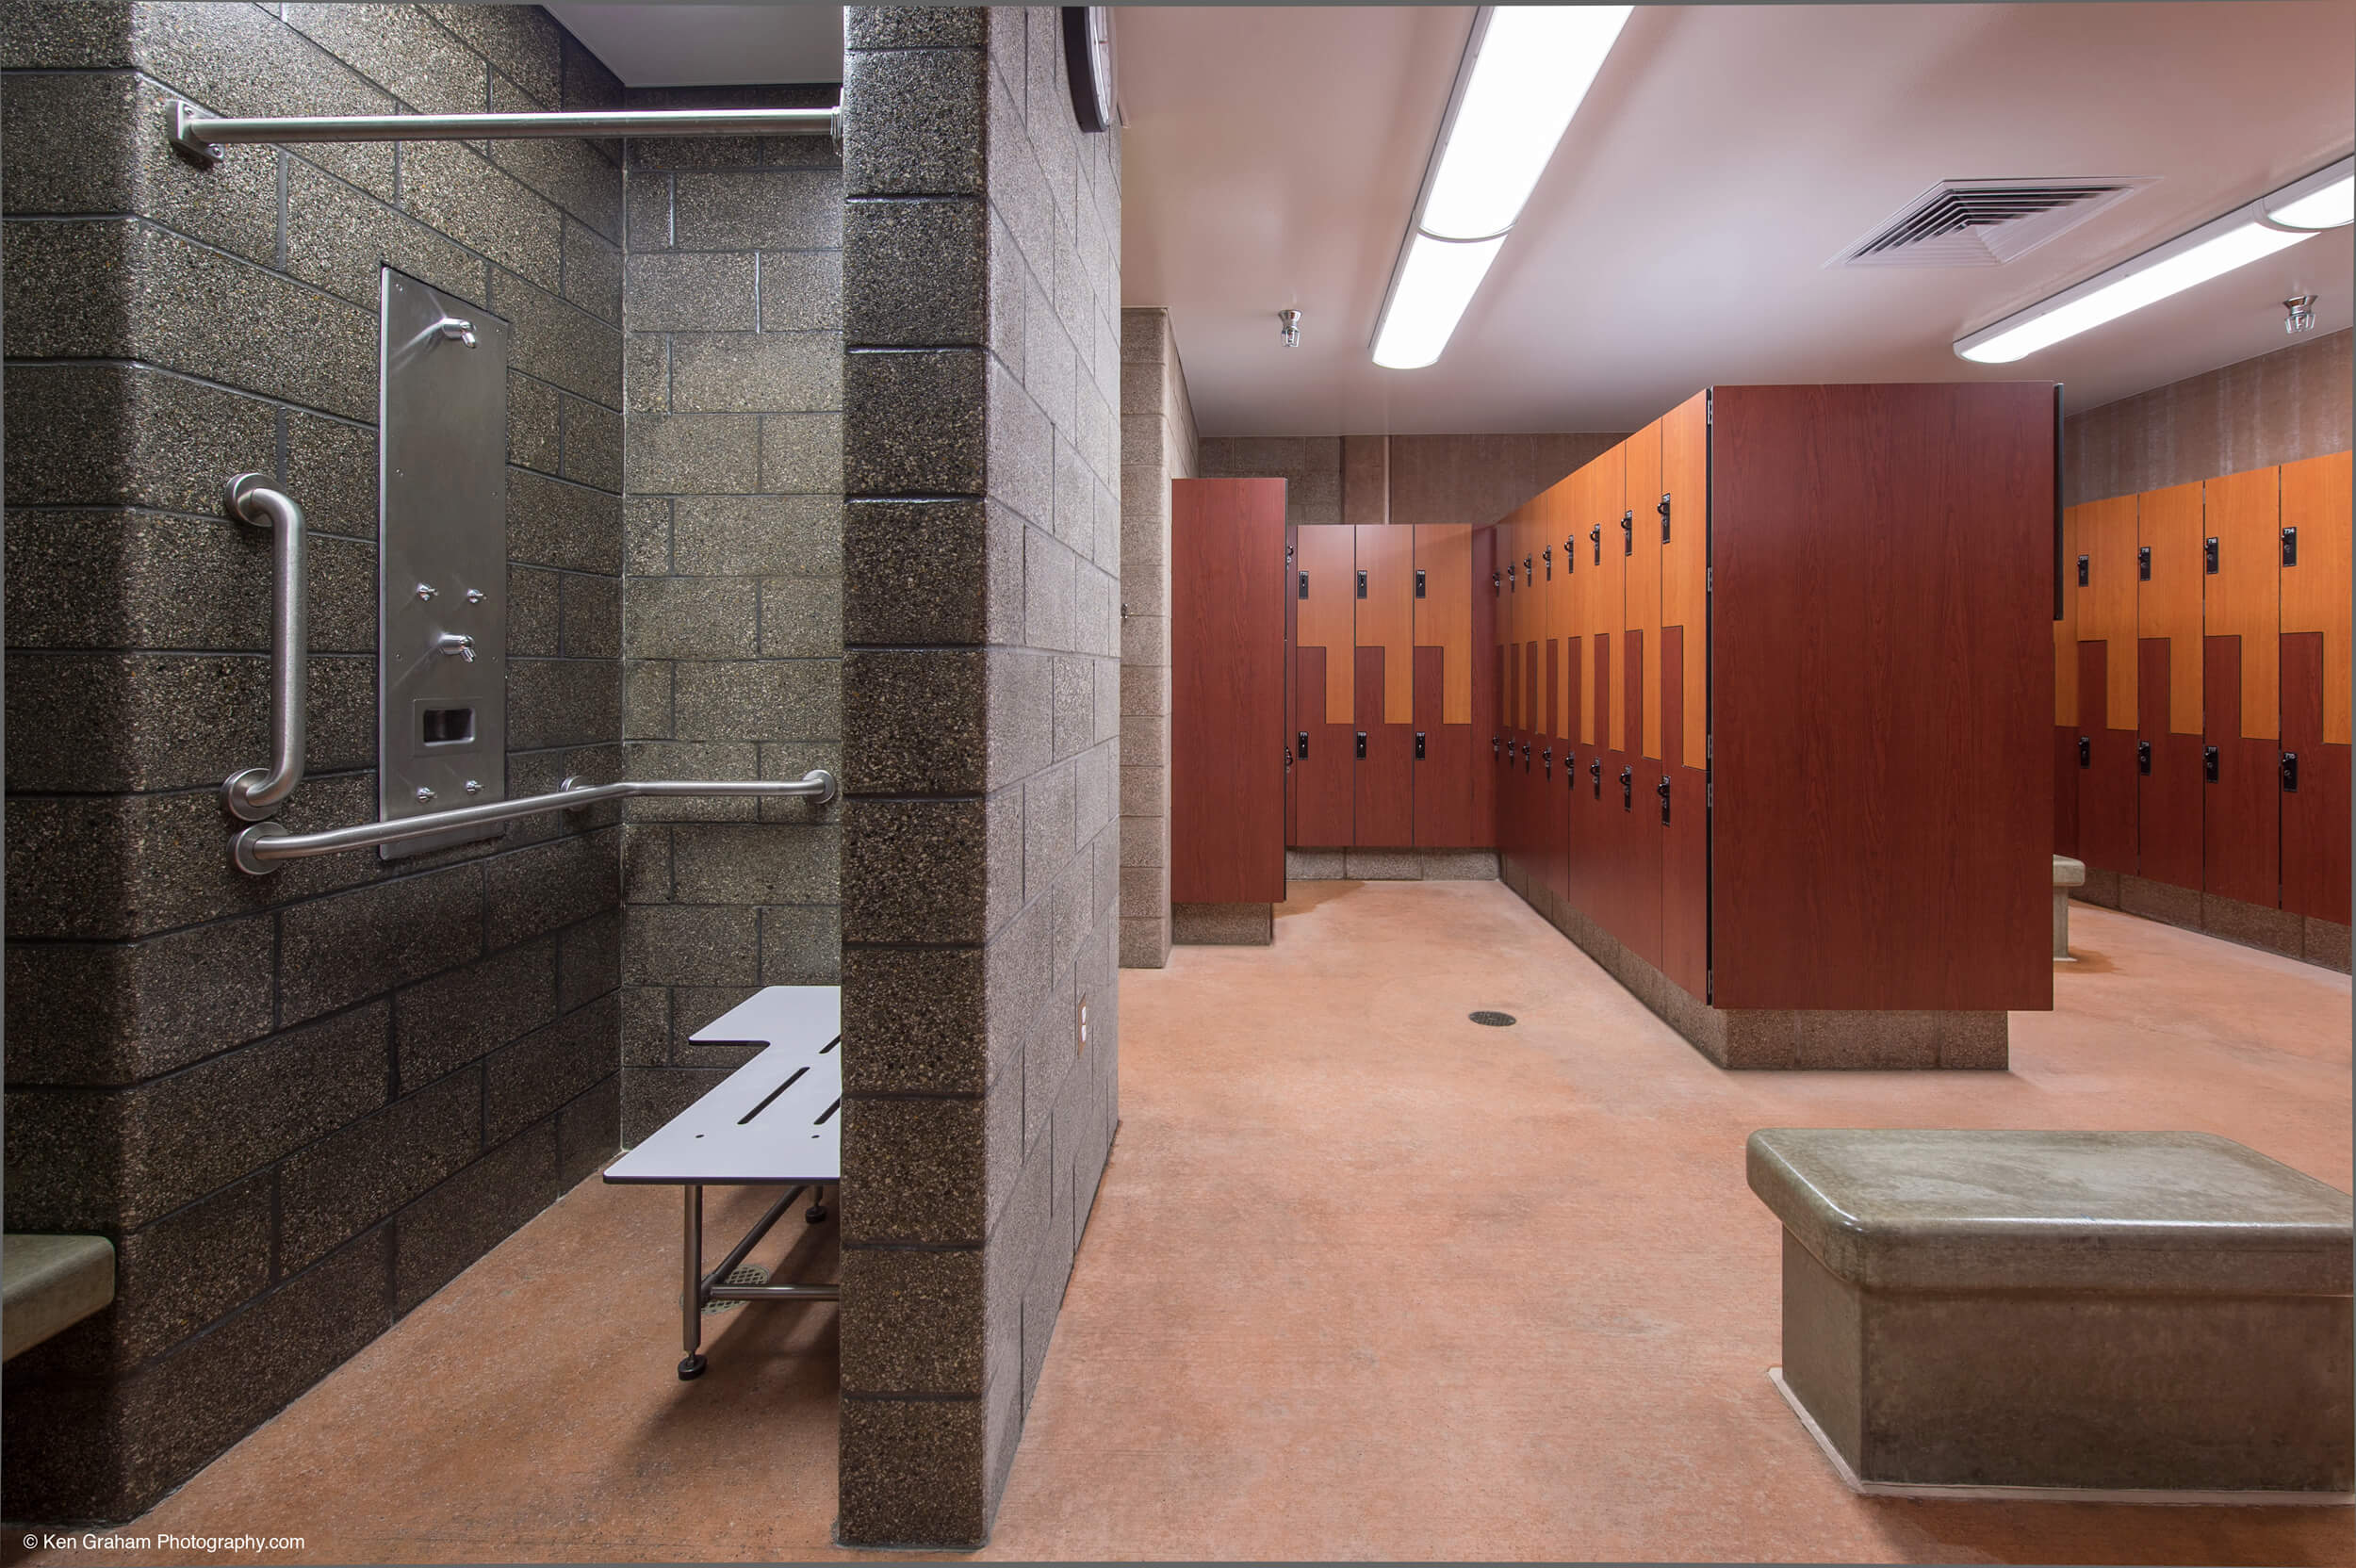 Expand Ketchikan Aquatic Center Locker Room